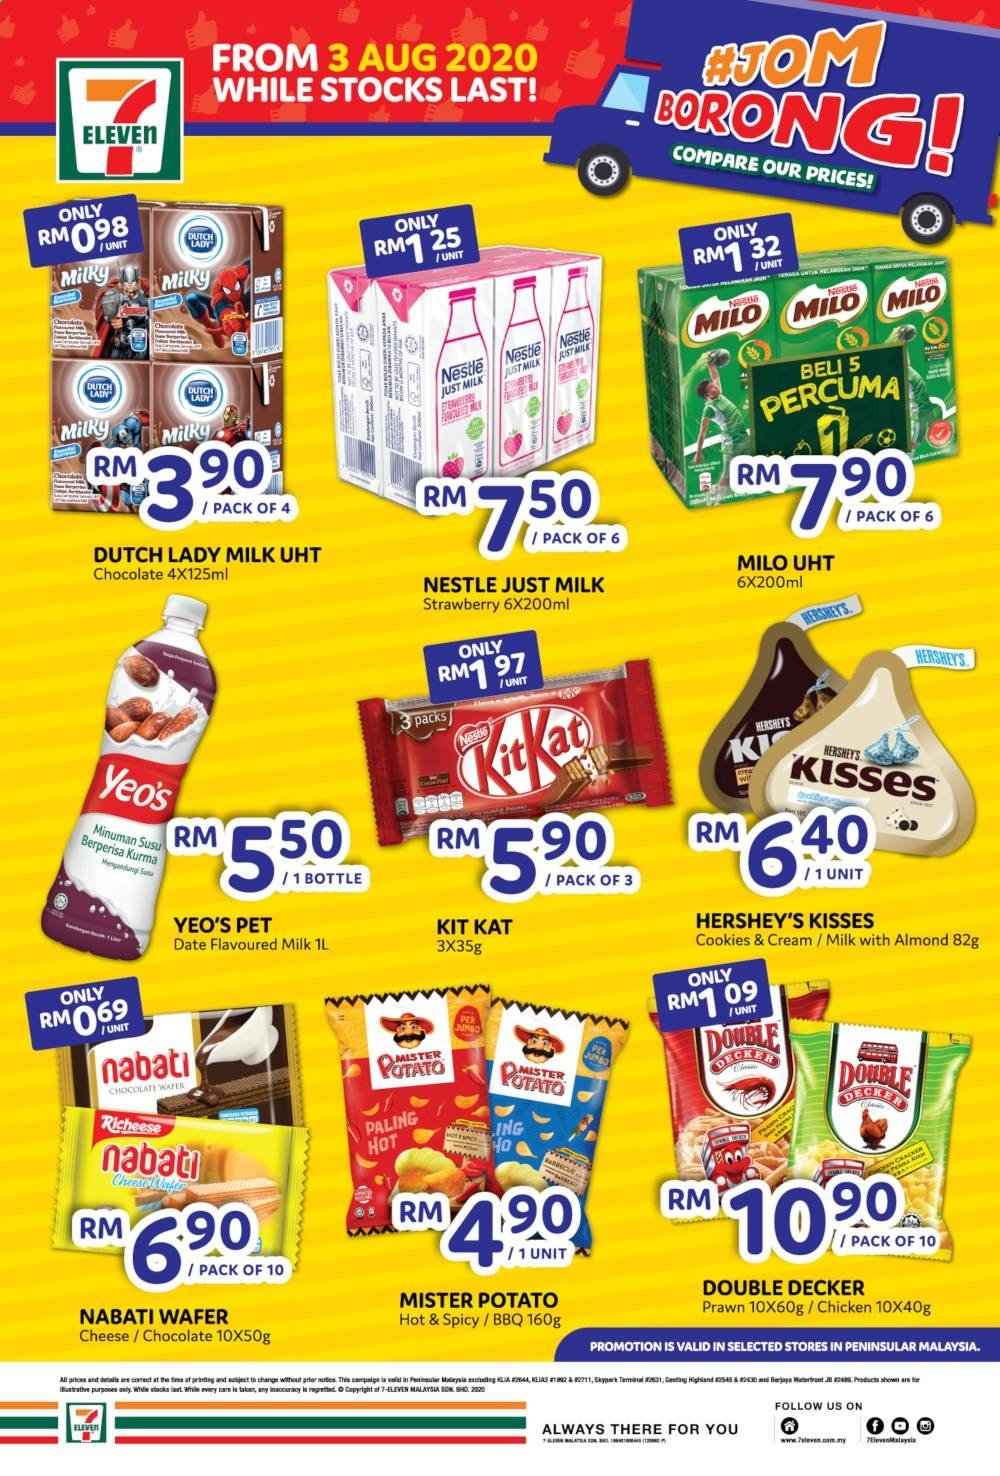 Iklan 7 Eleven - Produk jualan - chicken, milk, always, bottle, cookies, cream, chocolate, pet, nestlé. Halaman 1.